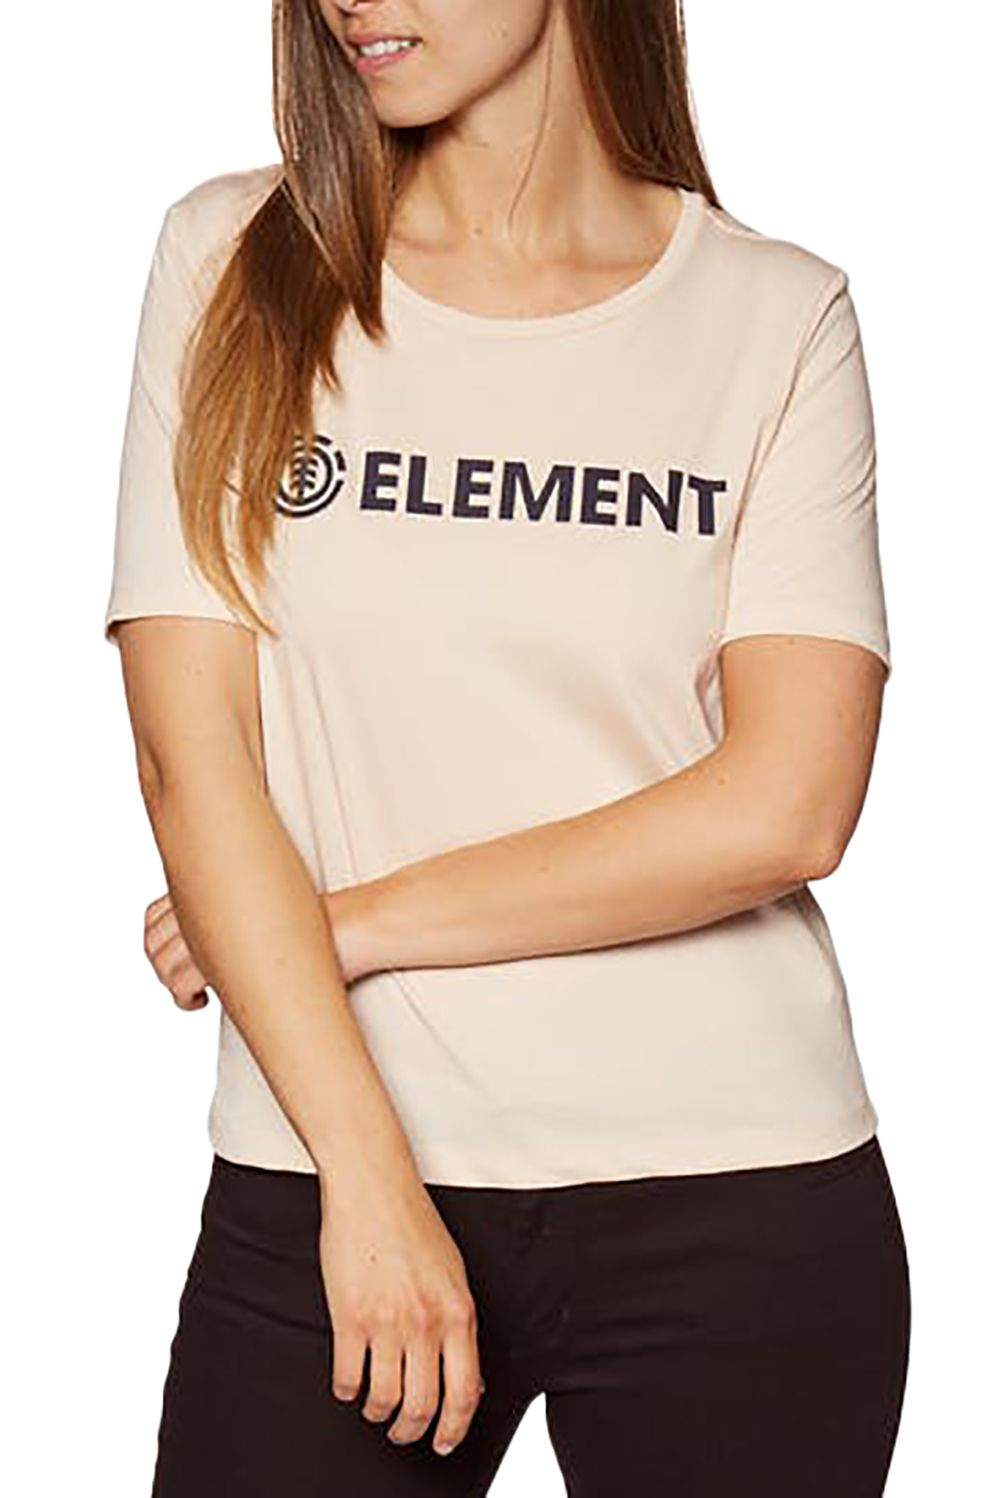 Element T-Shirt ELEMENT LOGO White Smoke